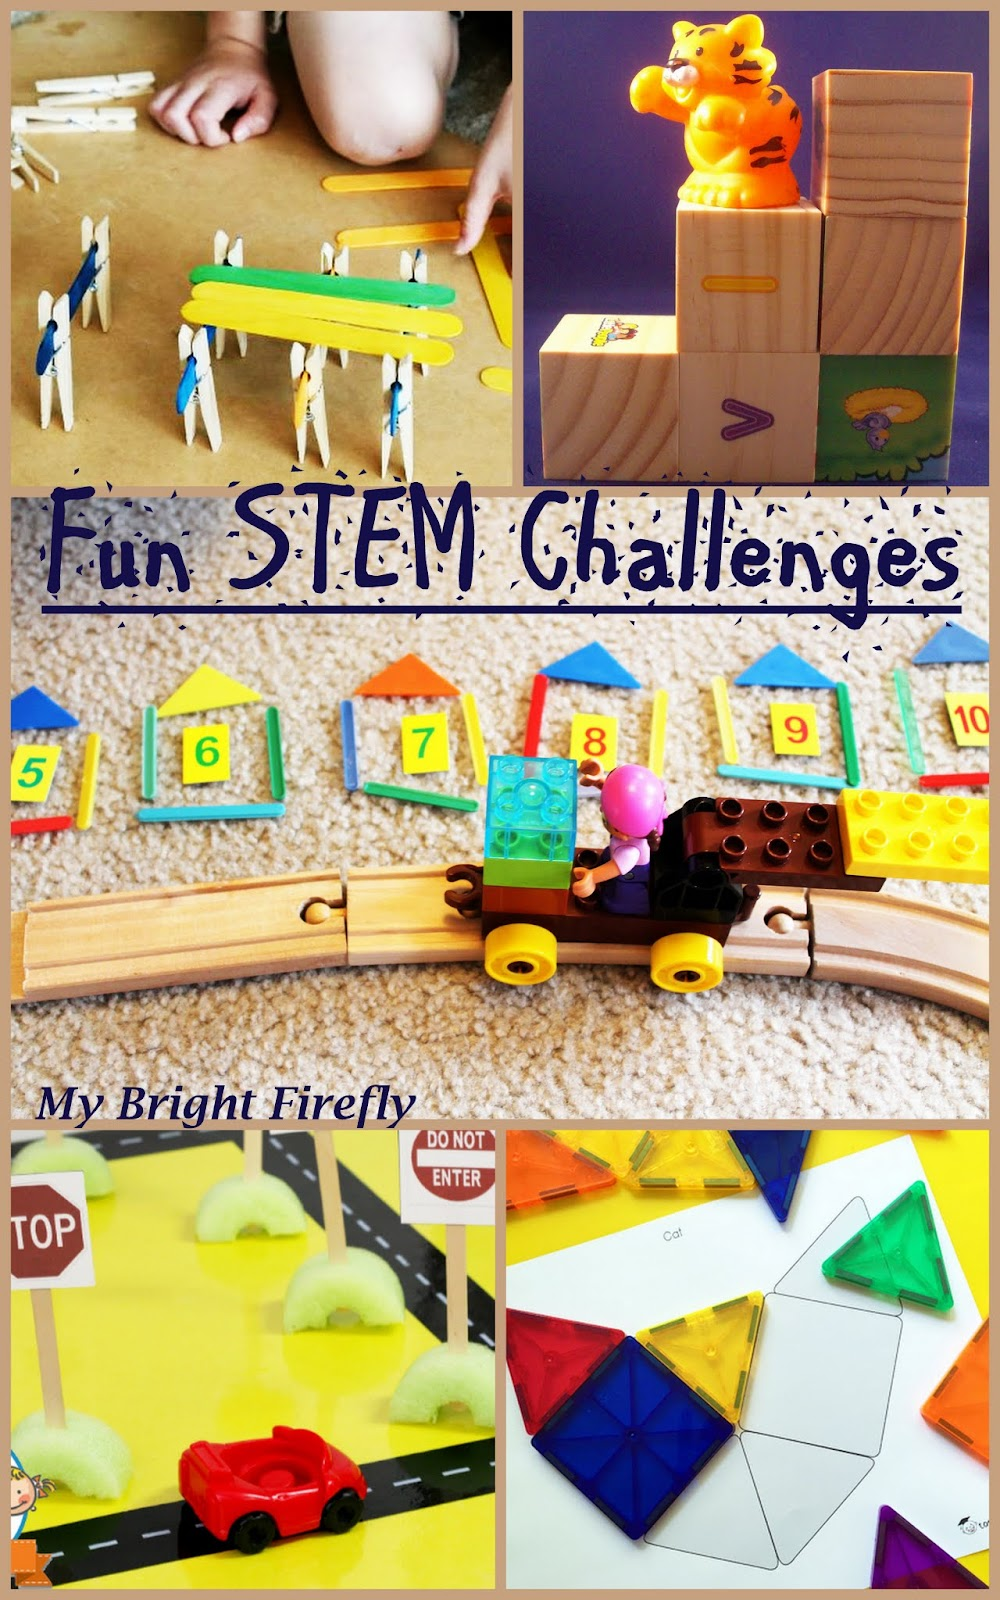 My Bright Firefly Fun Stem Challenges In The Block Center For